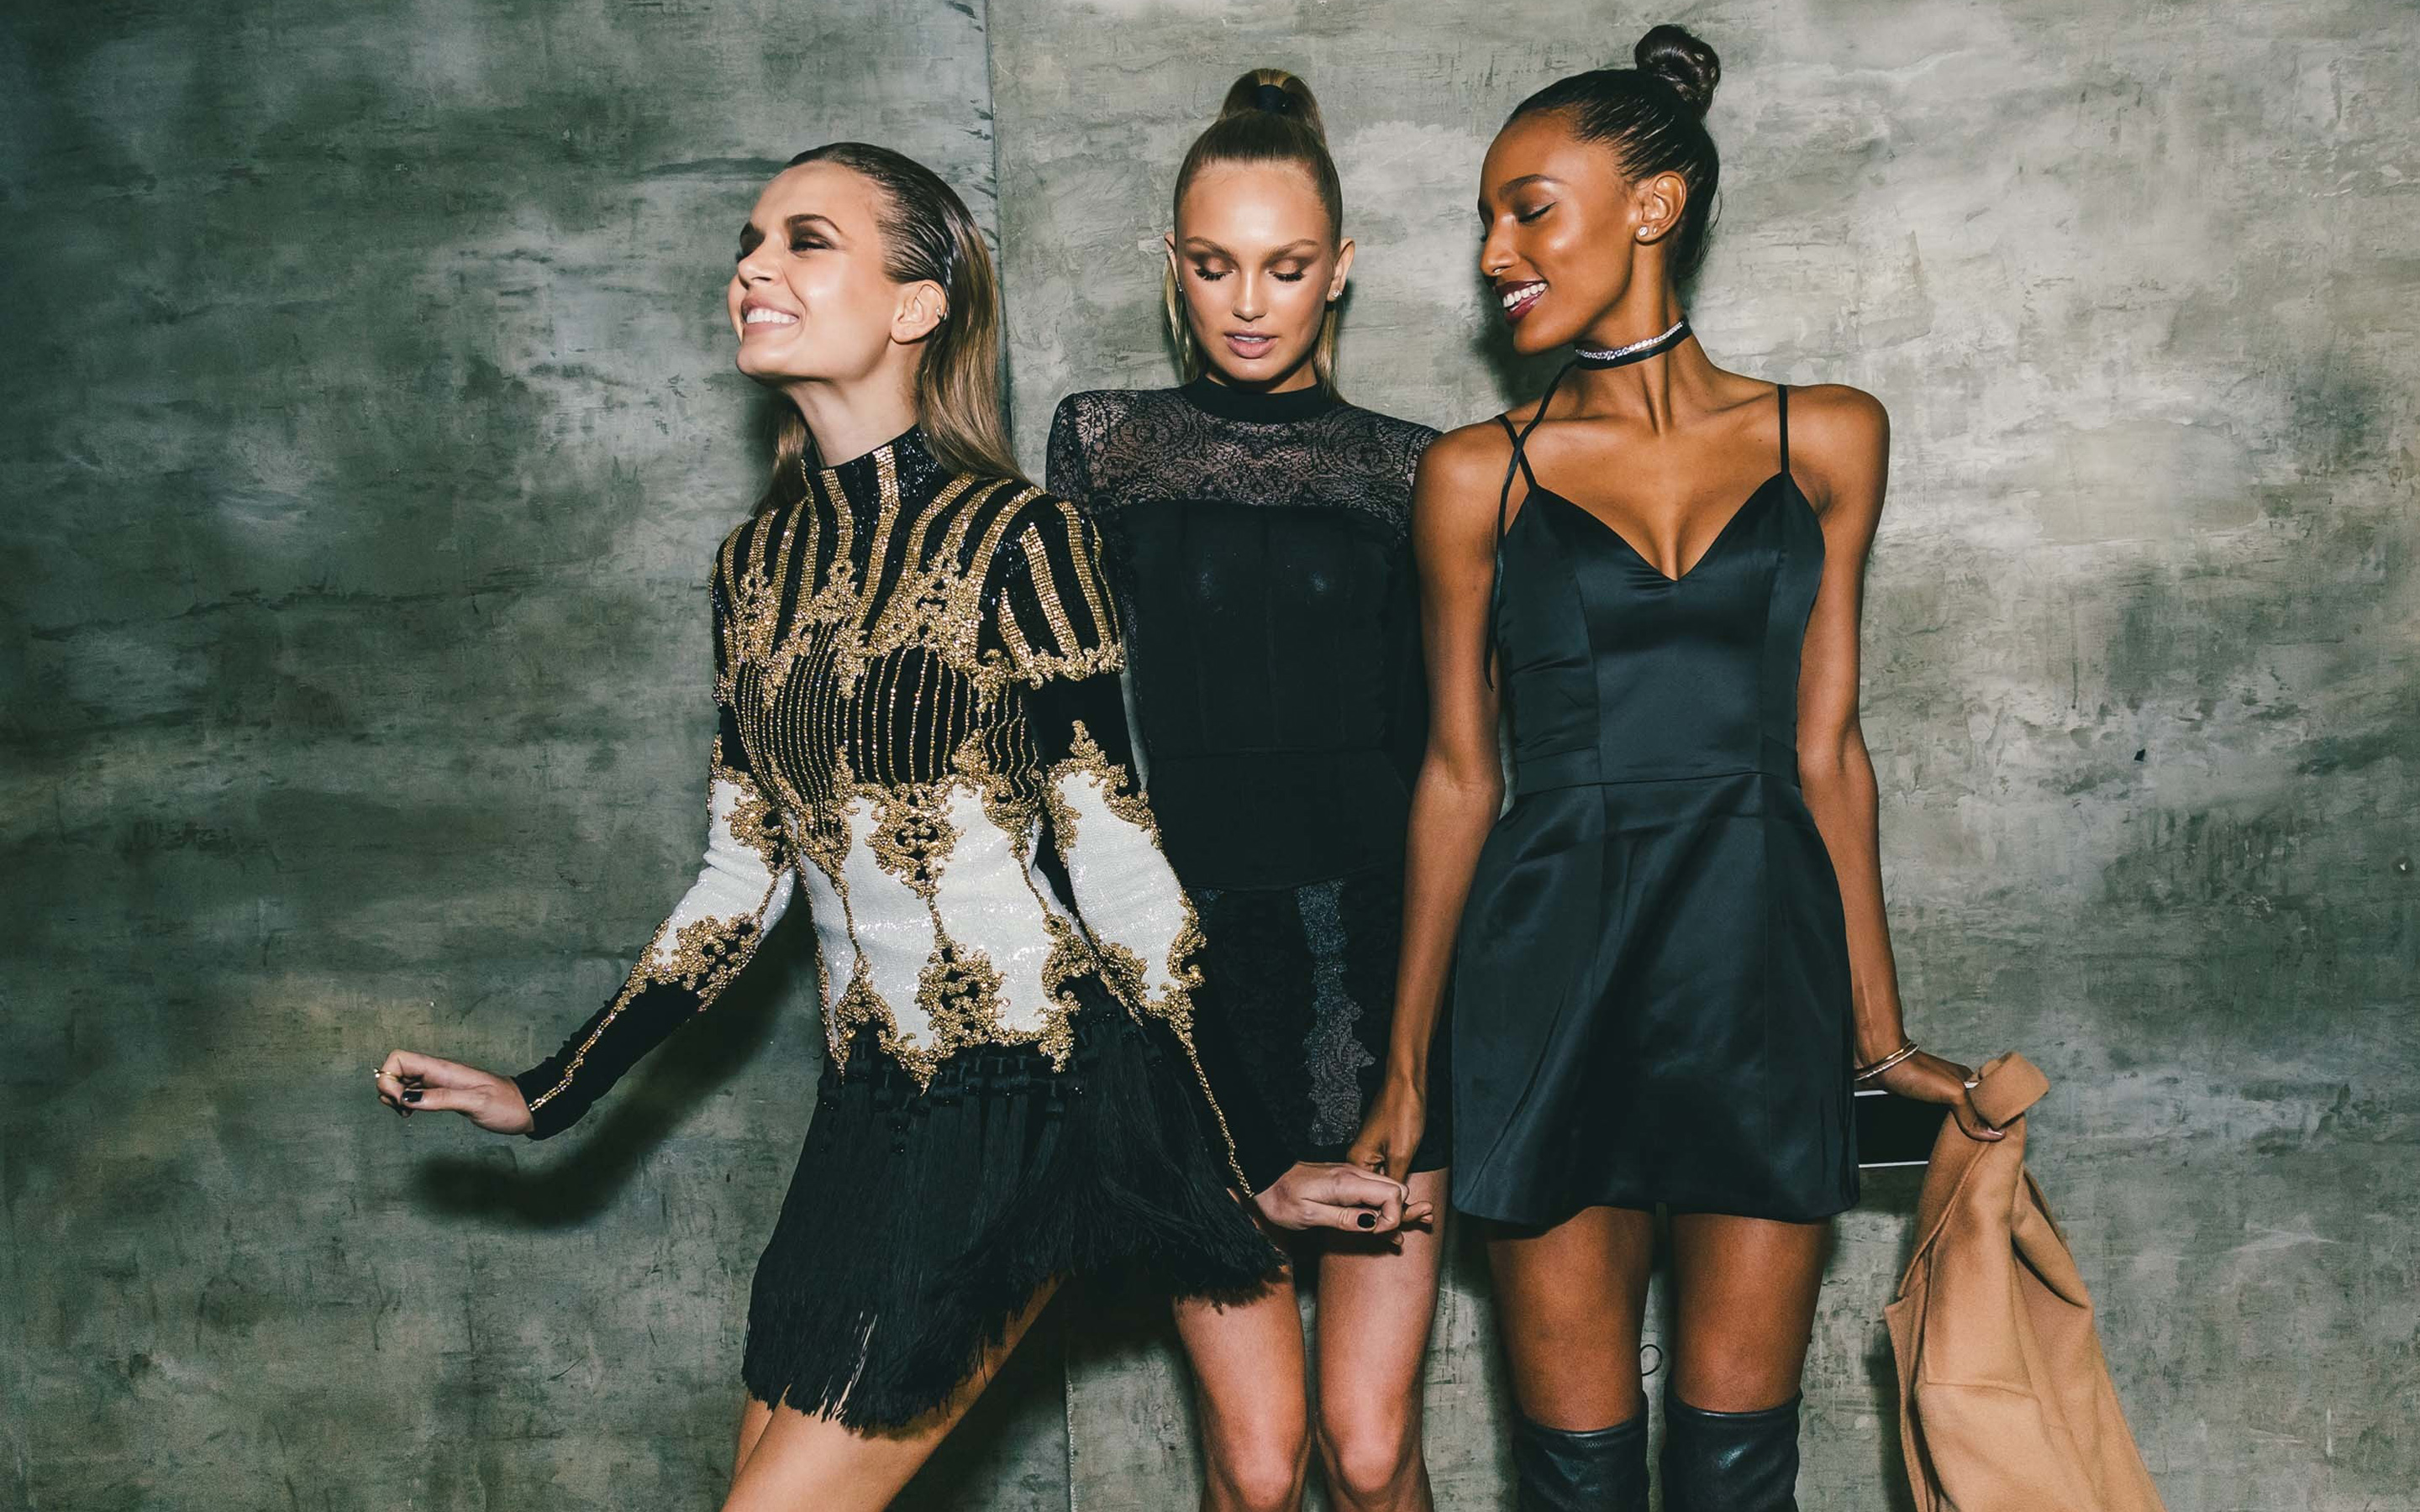 Download wallpapers Josephine Skriver, Romee Strijd, Jasmine Tookes